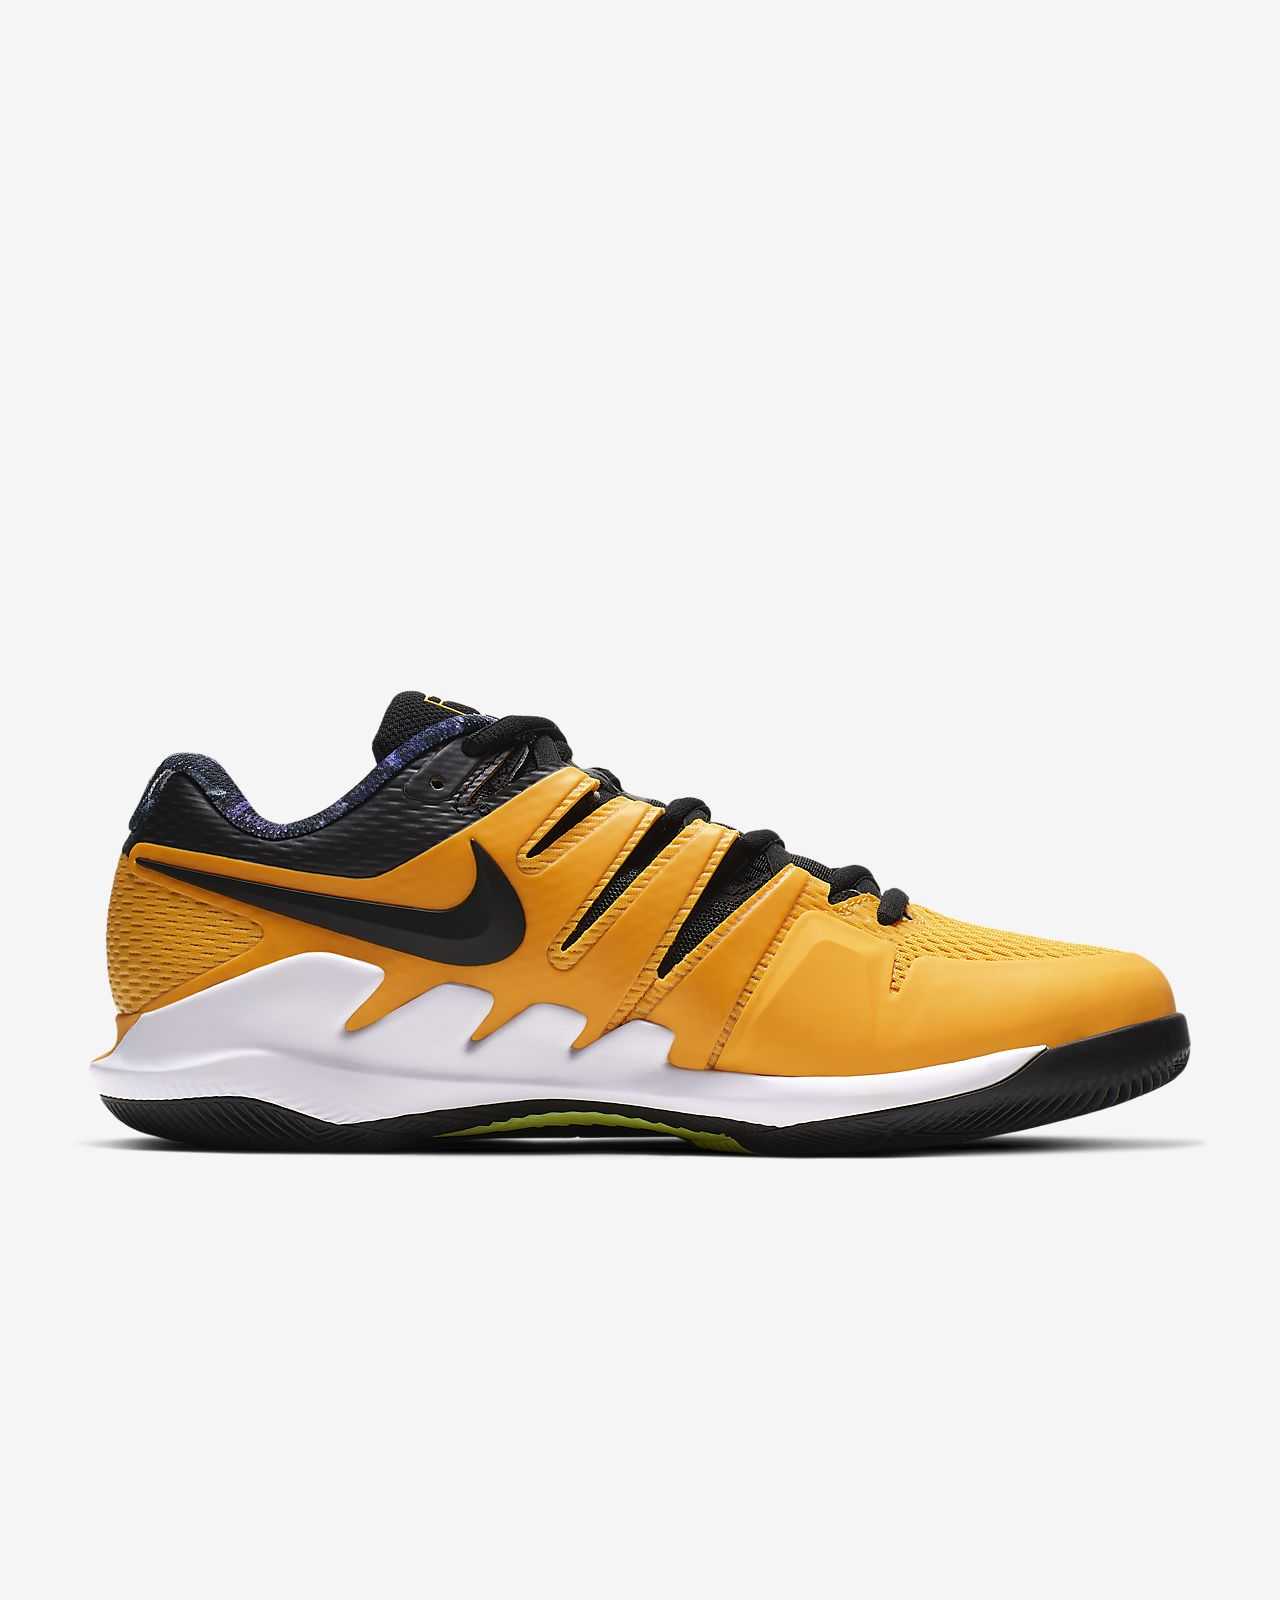 super popular 50bae ebd3d ... NikeCourt Air Zoom Vapor X Men s Hard Court Tennis Shoe